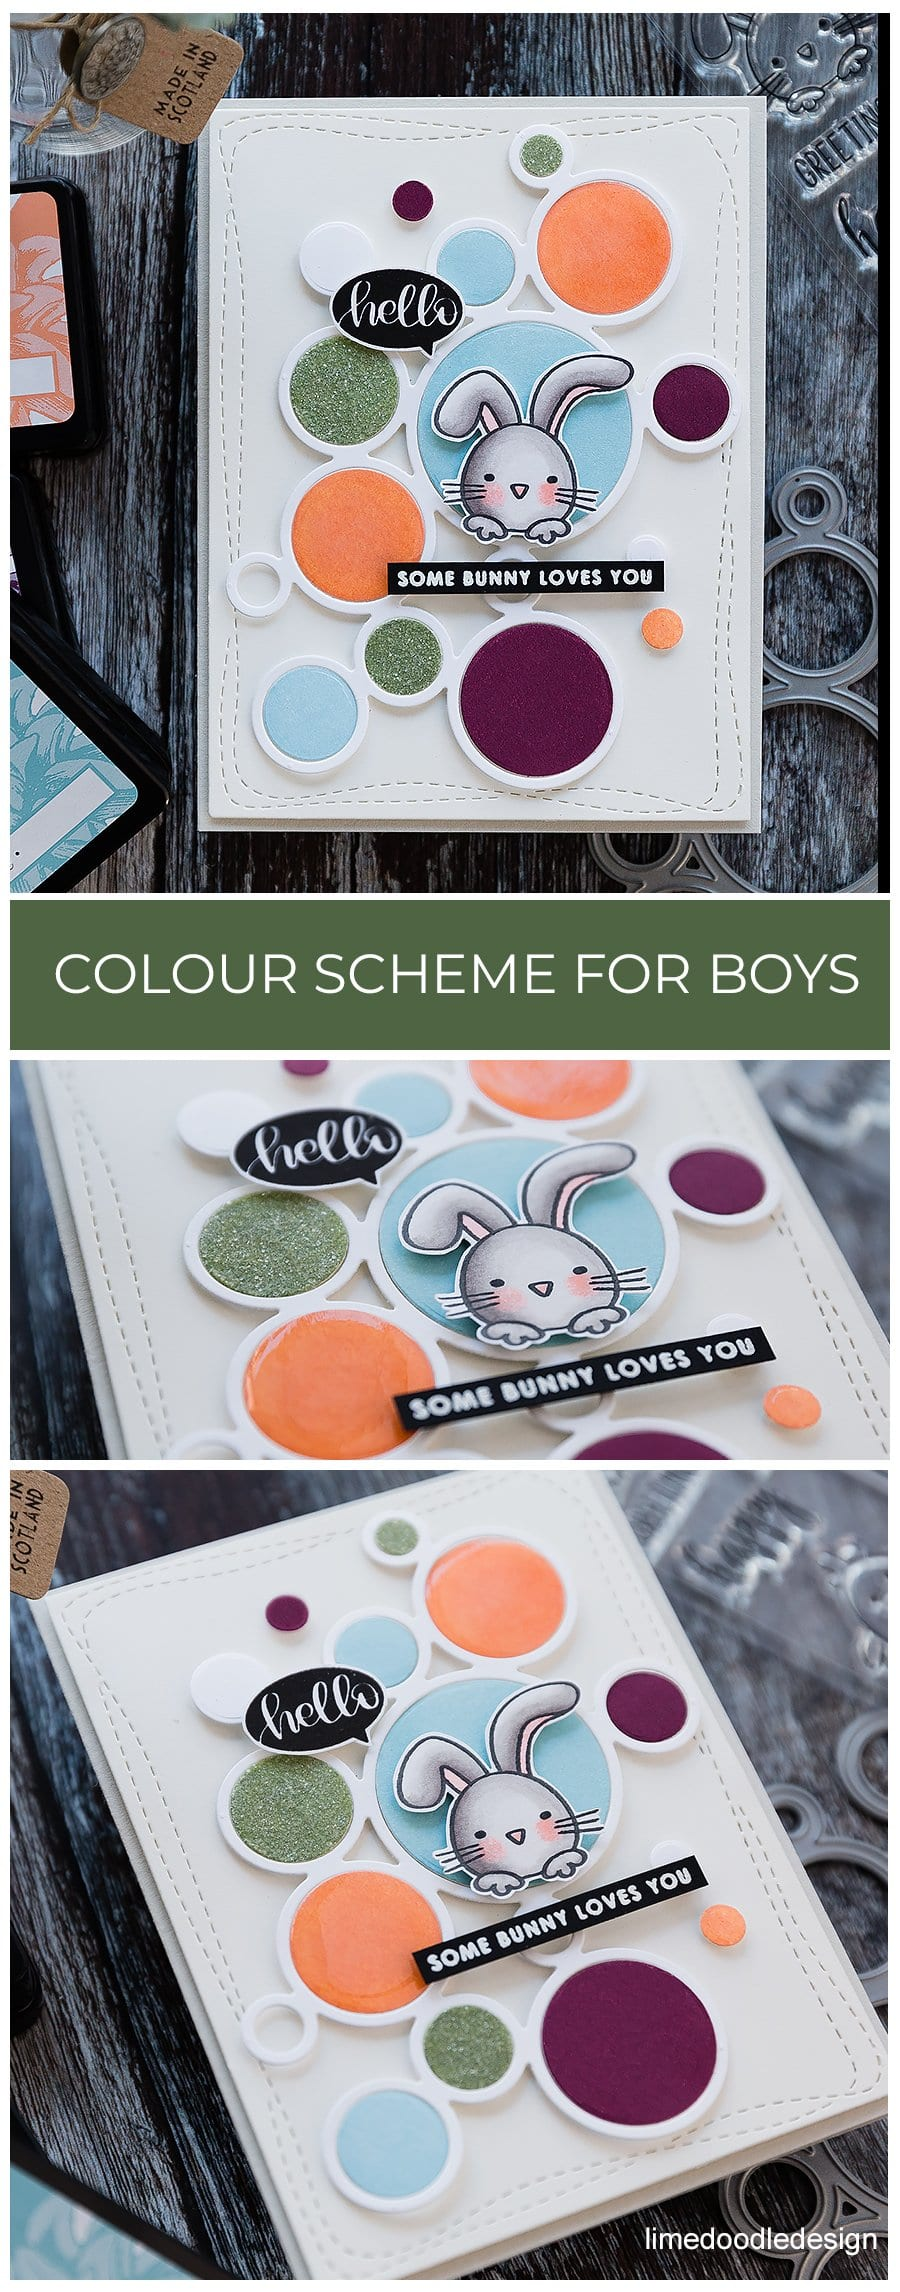 Colour scheme for boys cards. Handmade rabbit birthday card by Debby Hughes using supplies from Simon Says Stamp. Find out more here: https://limedoodledesign.com/2019/02/colour-scheme-for-boys/